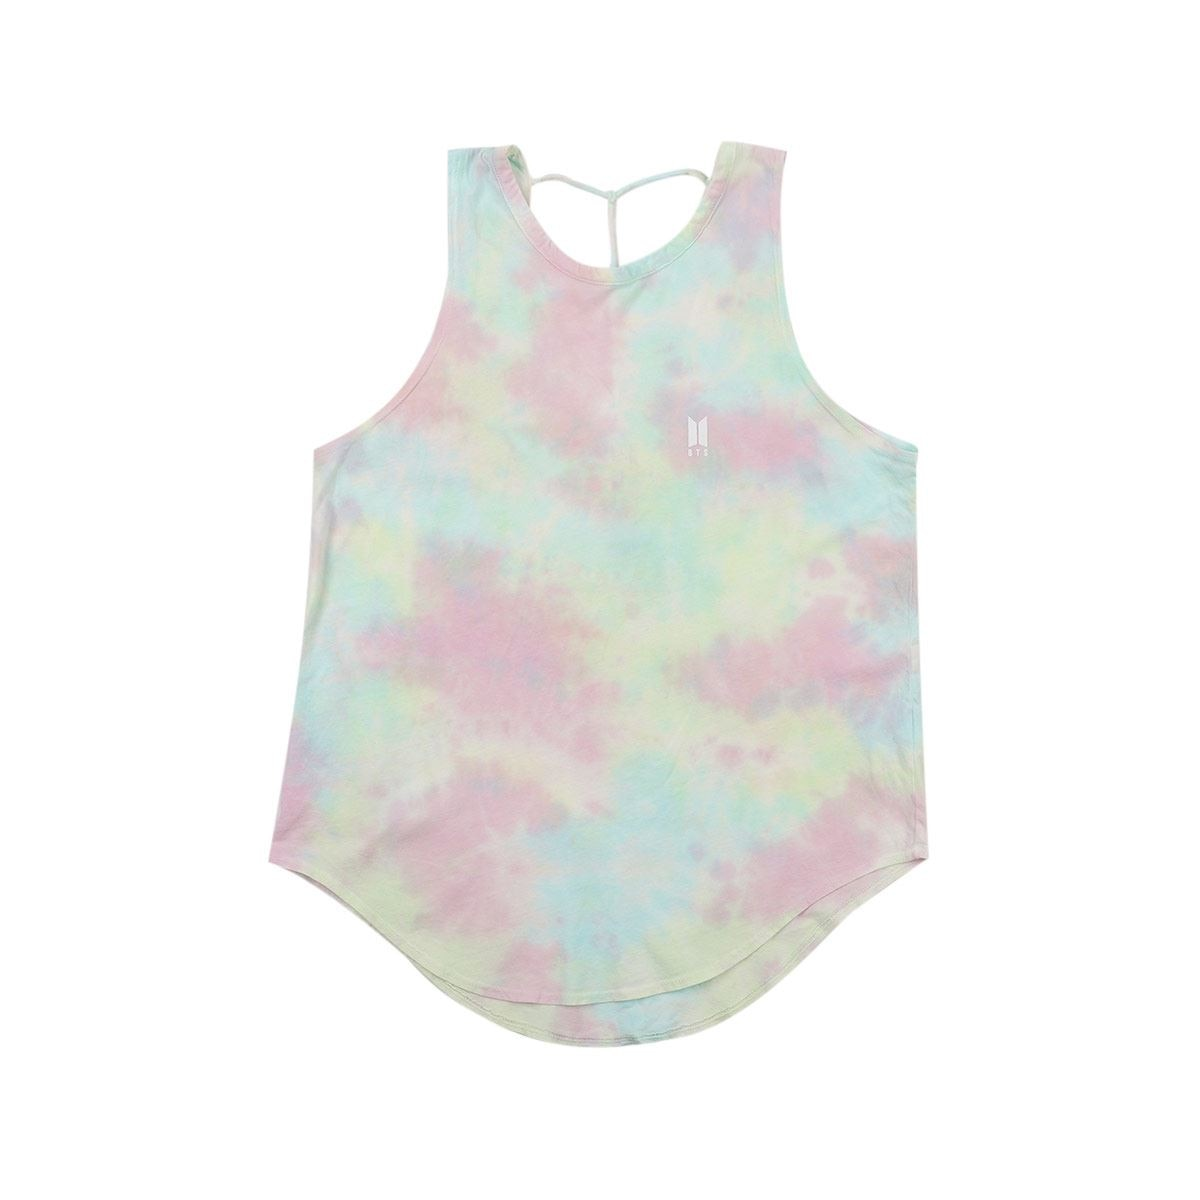 Tanque sin manga [find your name : teñido] / String tank [find your name : tye-dye]